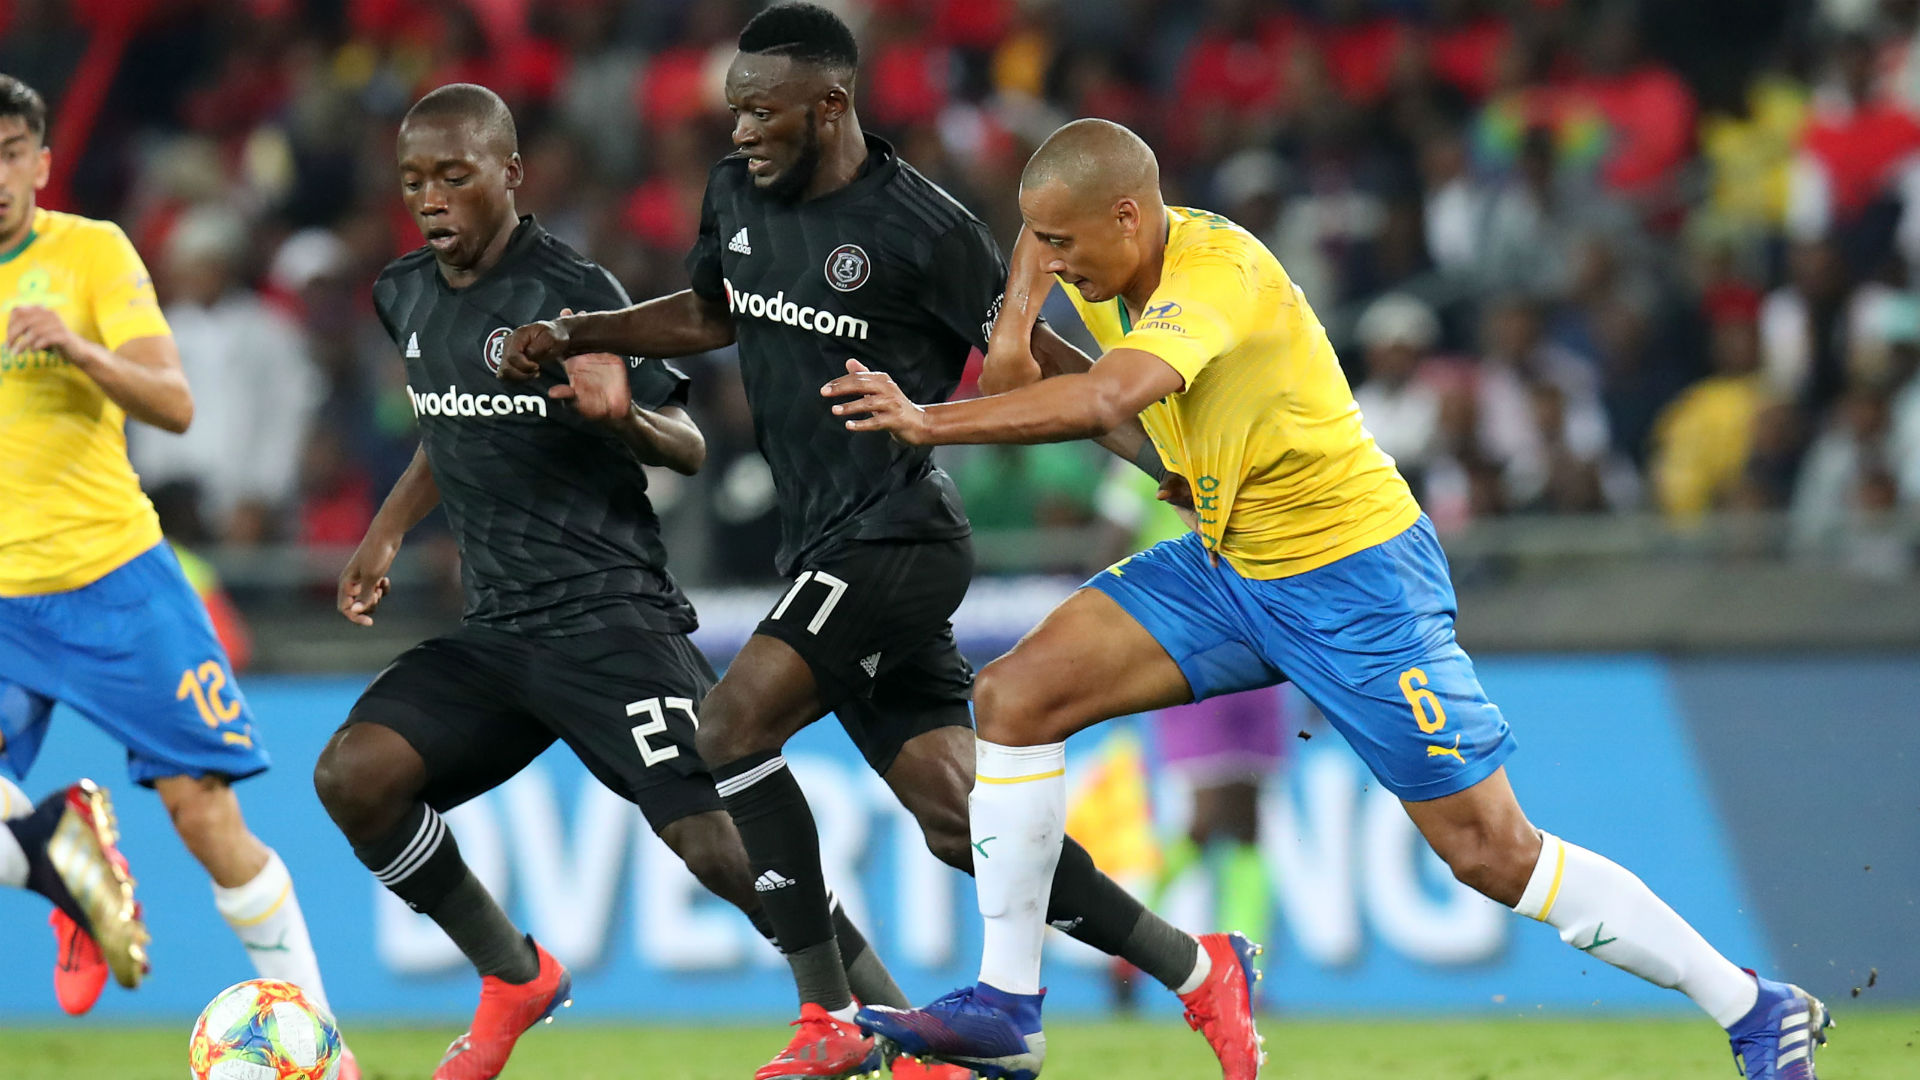 Orlando Pirates v Mamelodi Sundowns April 01